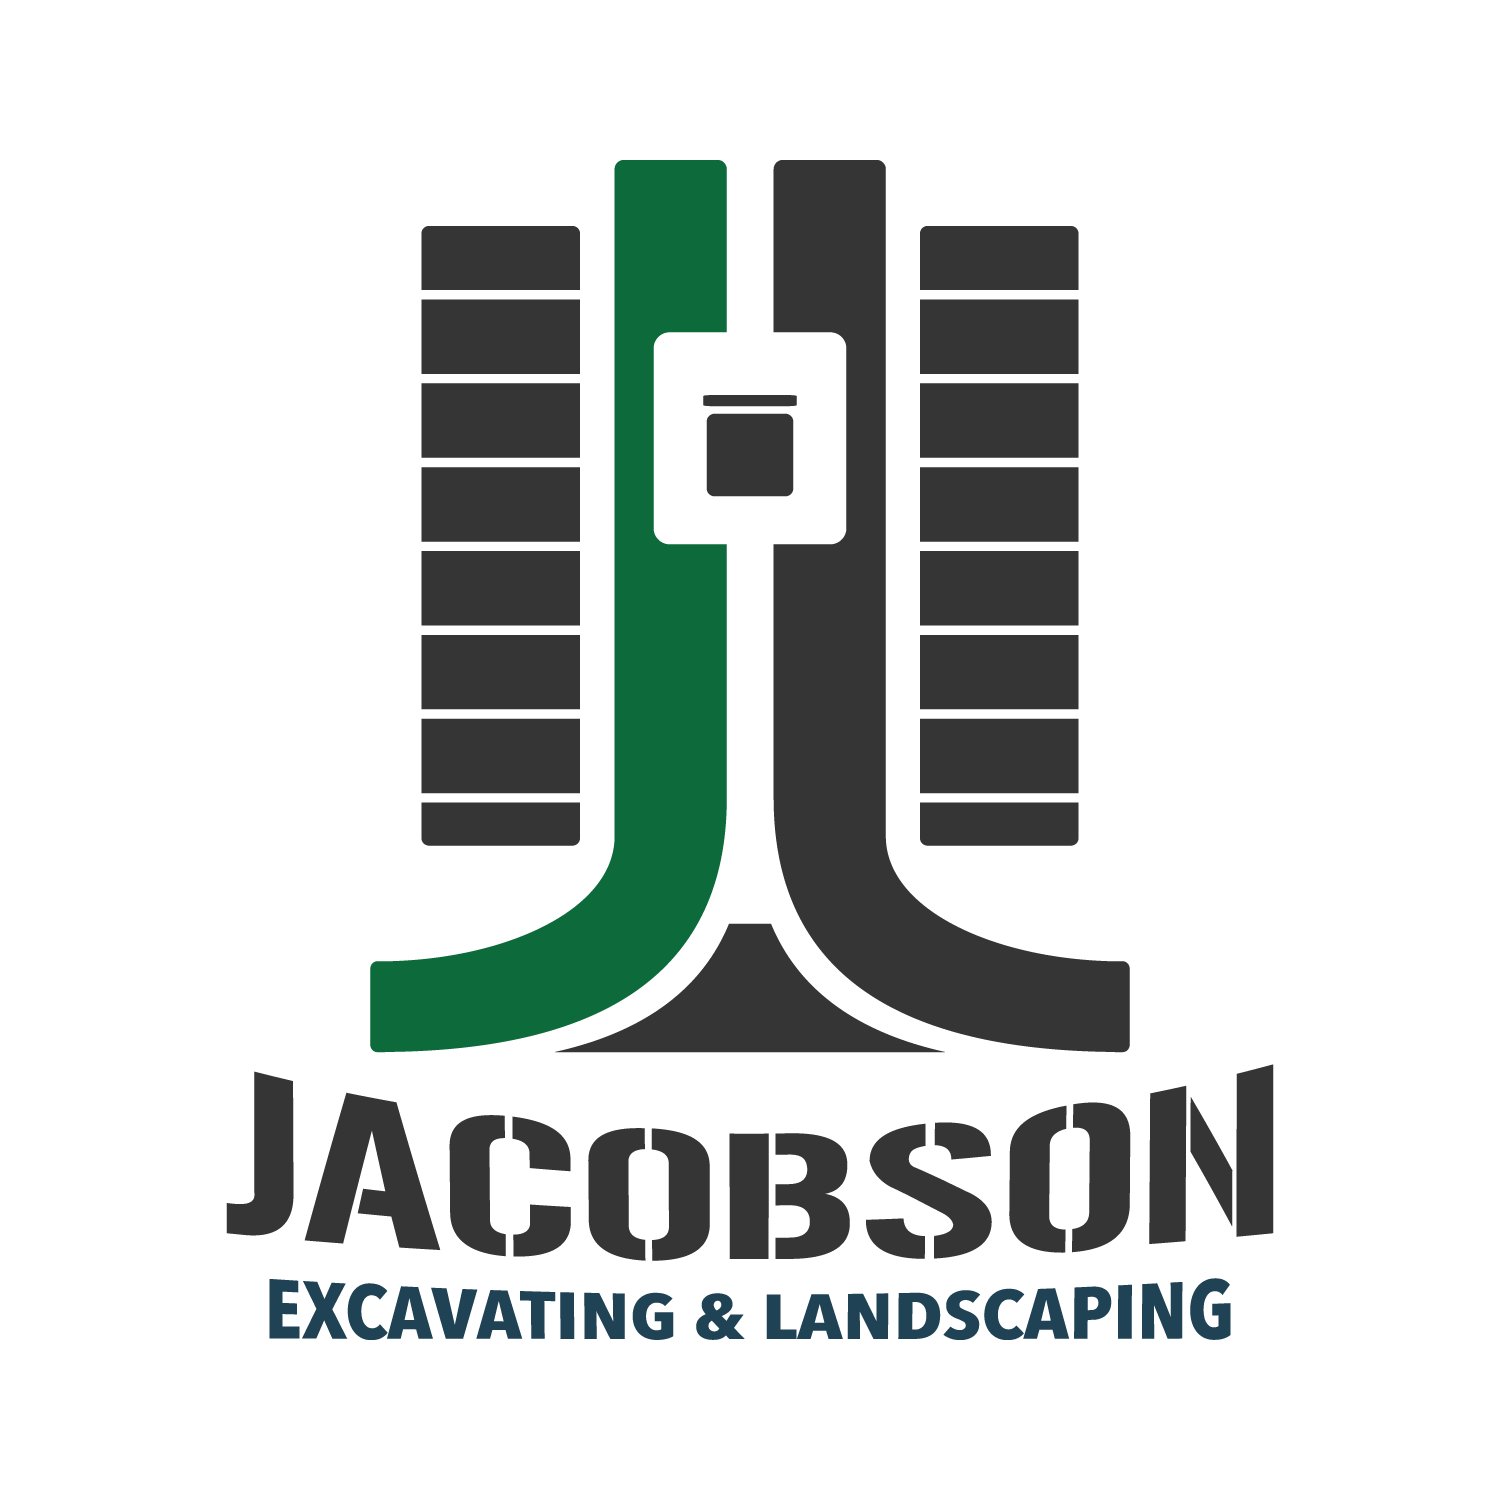 jacobson.png